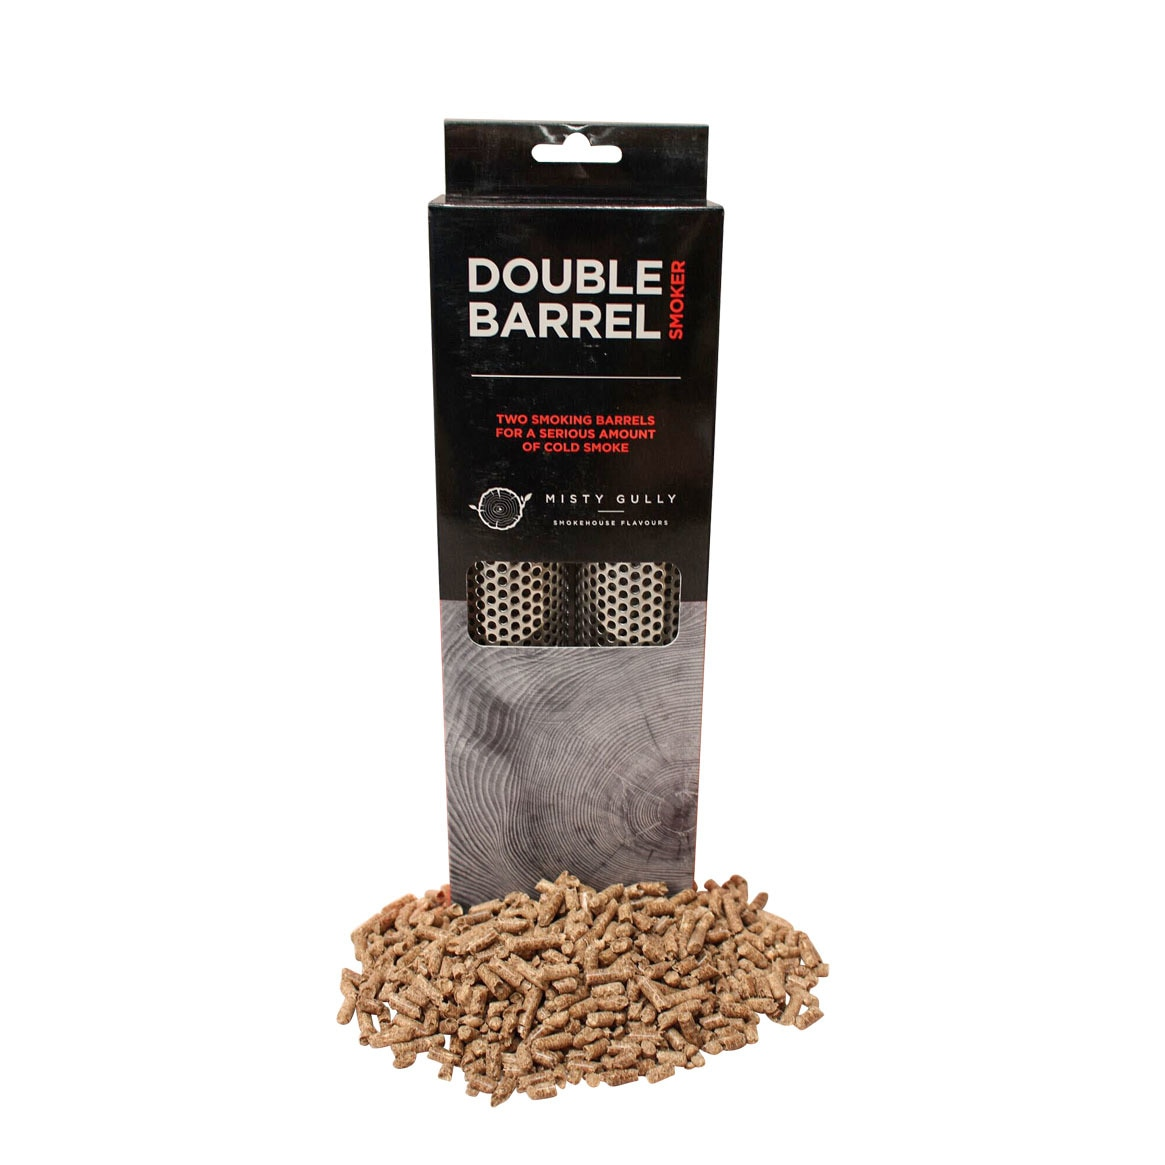 products Doub Pellets 81477.1518673581.1280.1280